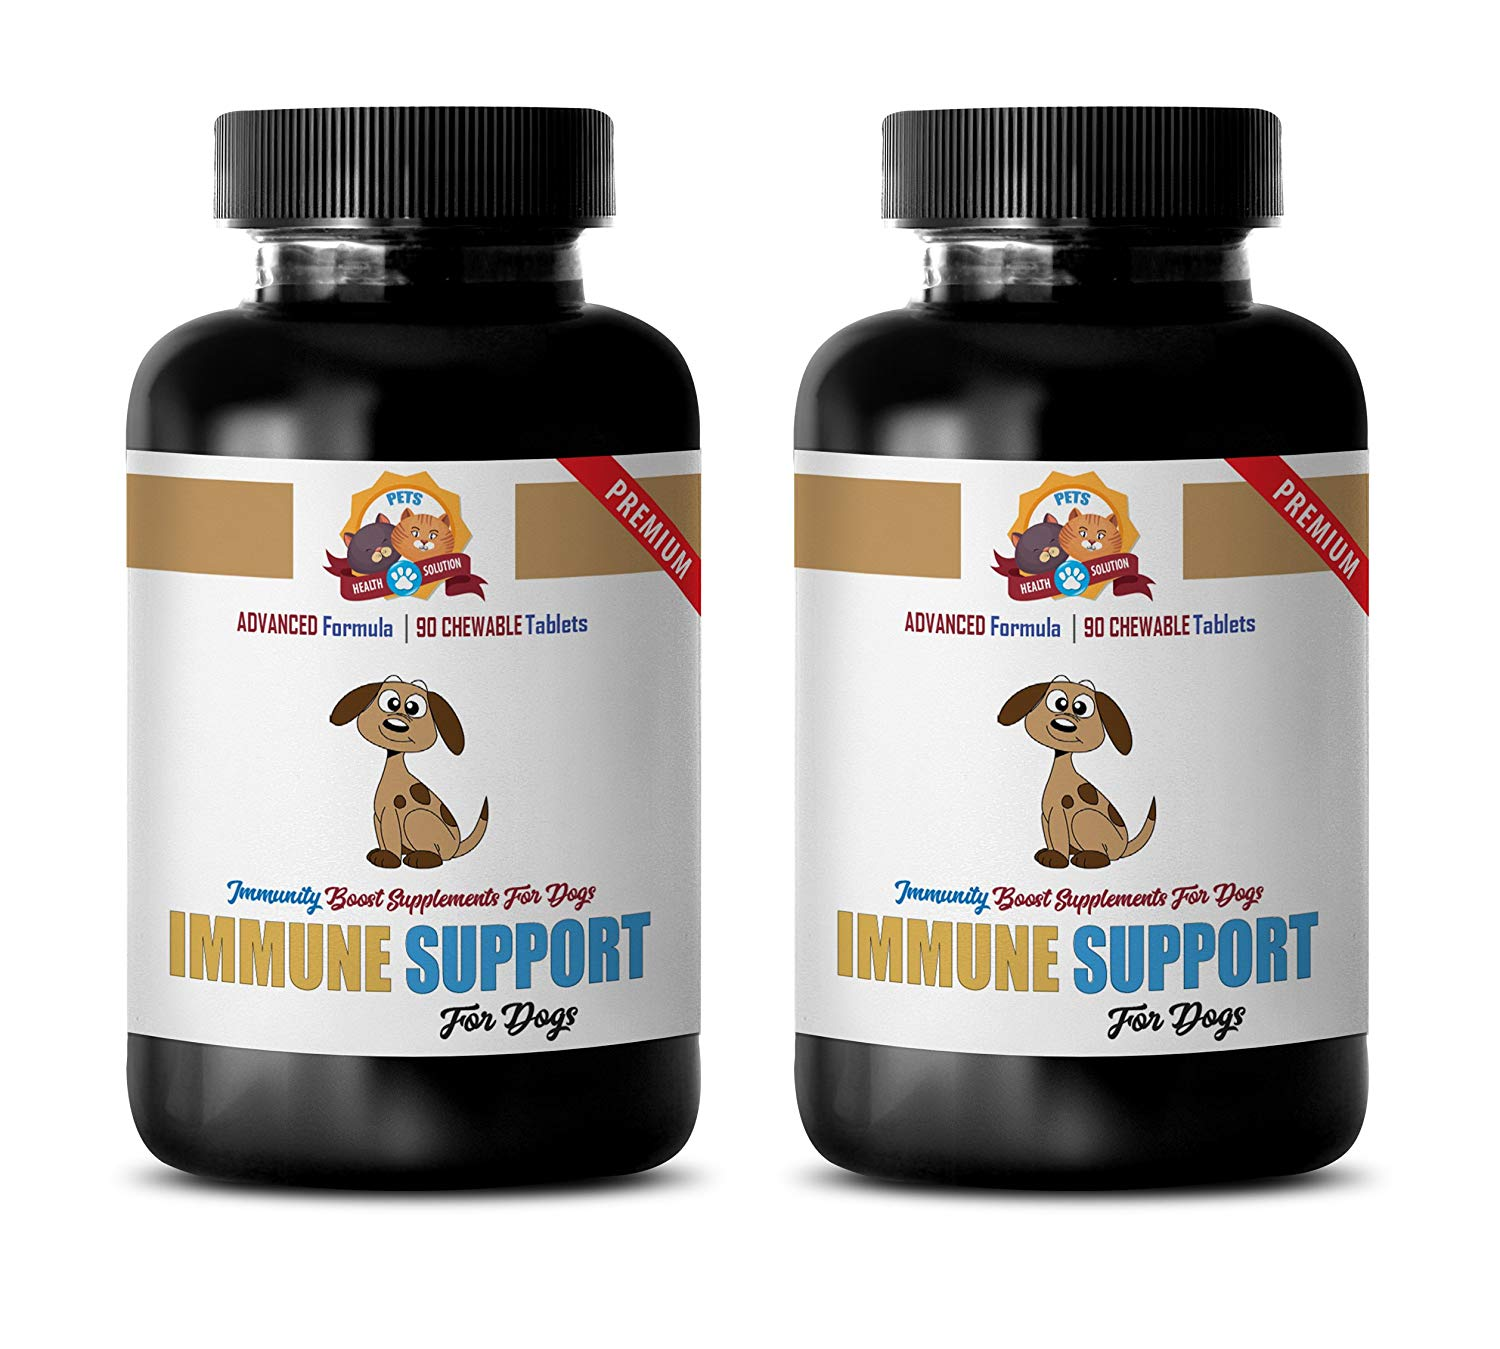 liver support for dogs - IMMUNE SUPPORT AND HEALTH - FOR DOGS TREATS - PREMIUM ADNVACED FORMULA - natural immune support for dogs - 180 Treats (2 Bottle)